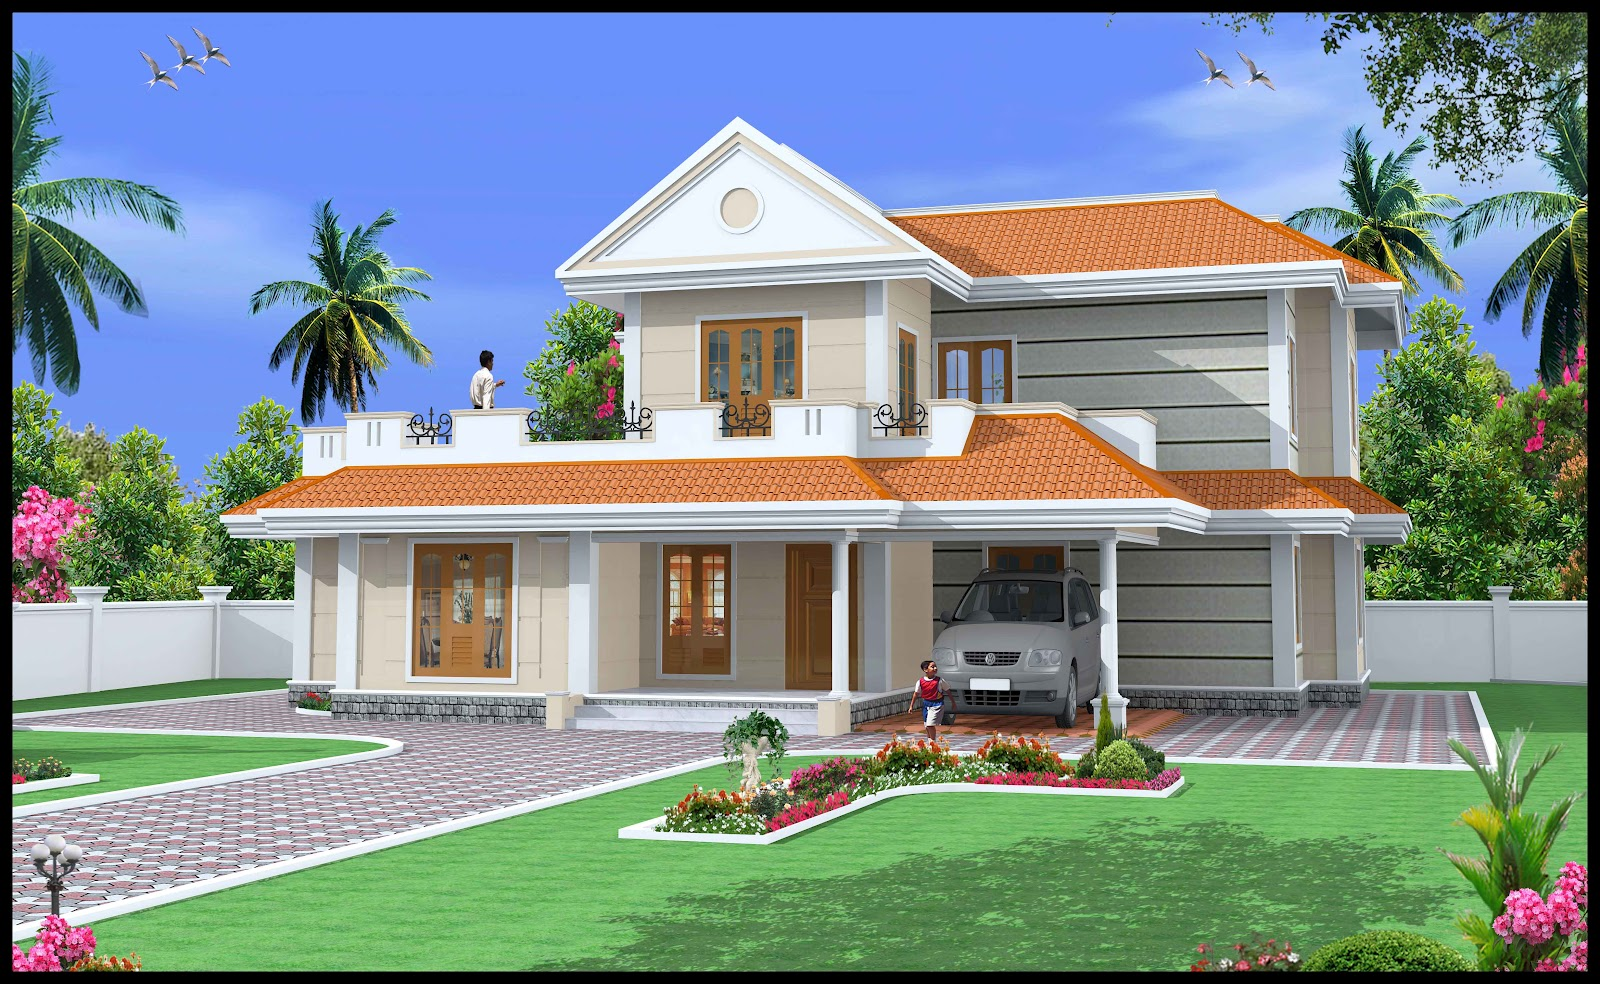 Duplexhouseplans30x40 joy studio design gallery best for Duplex house plans 30x40